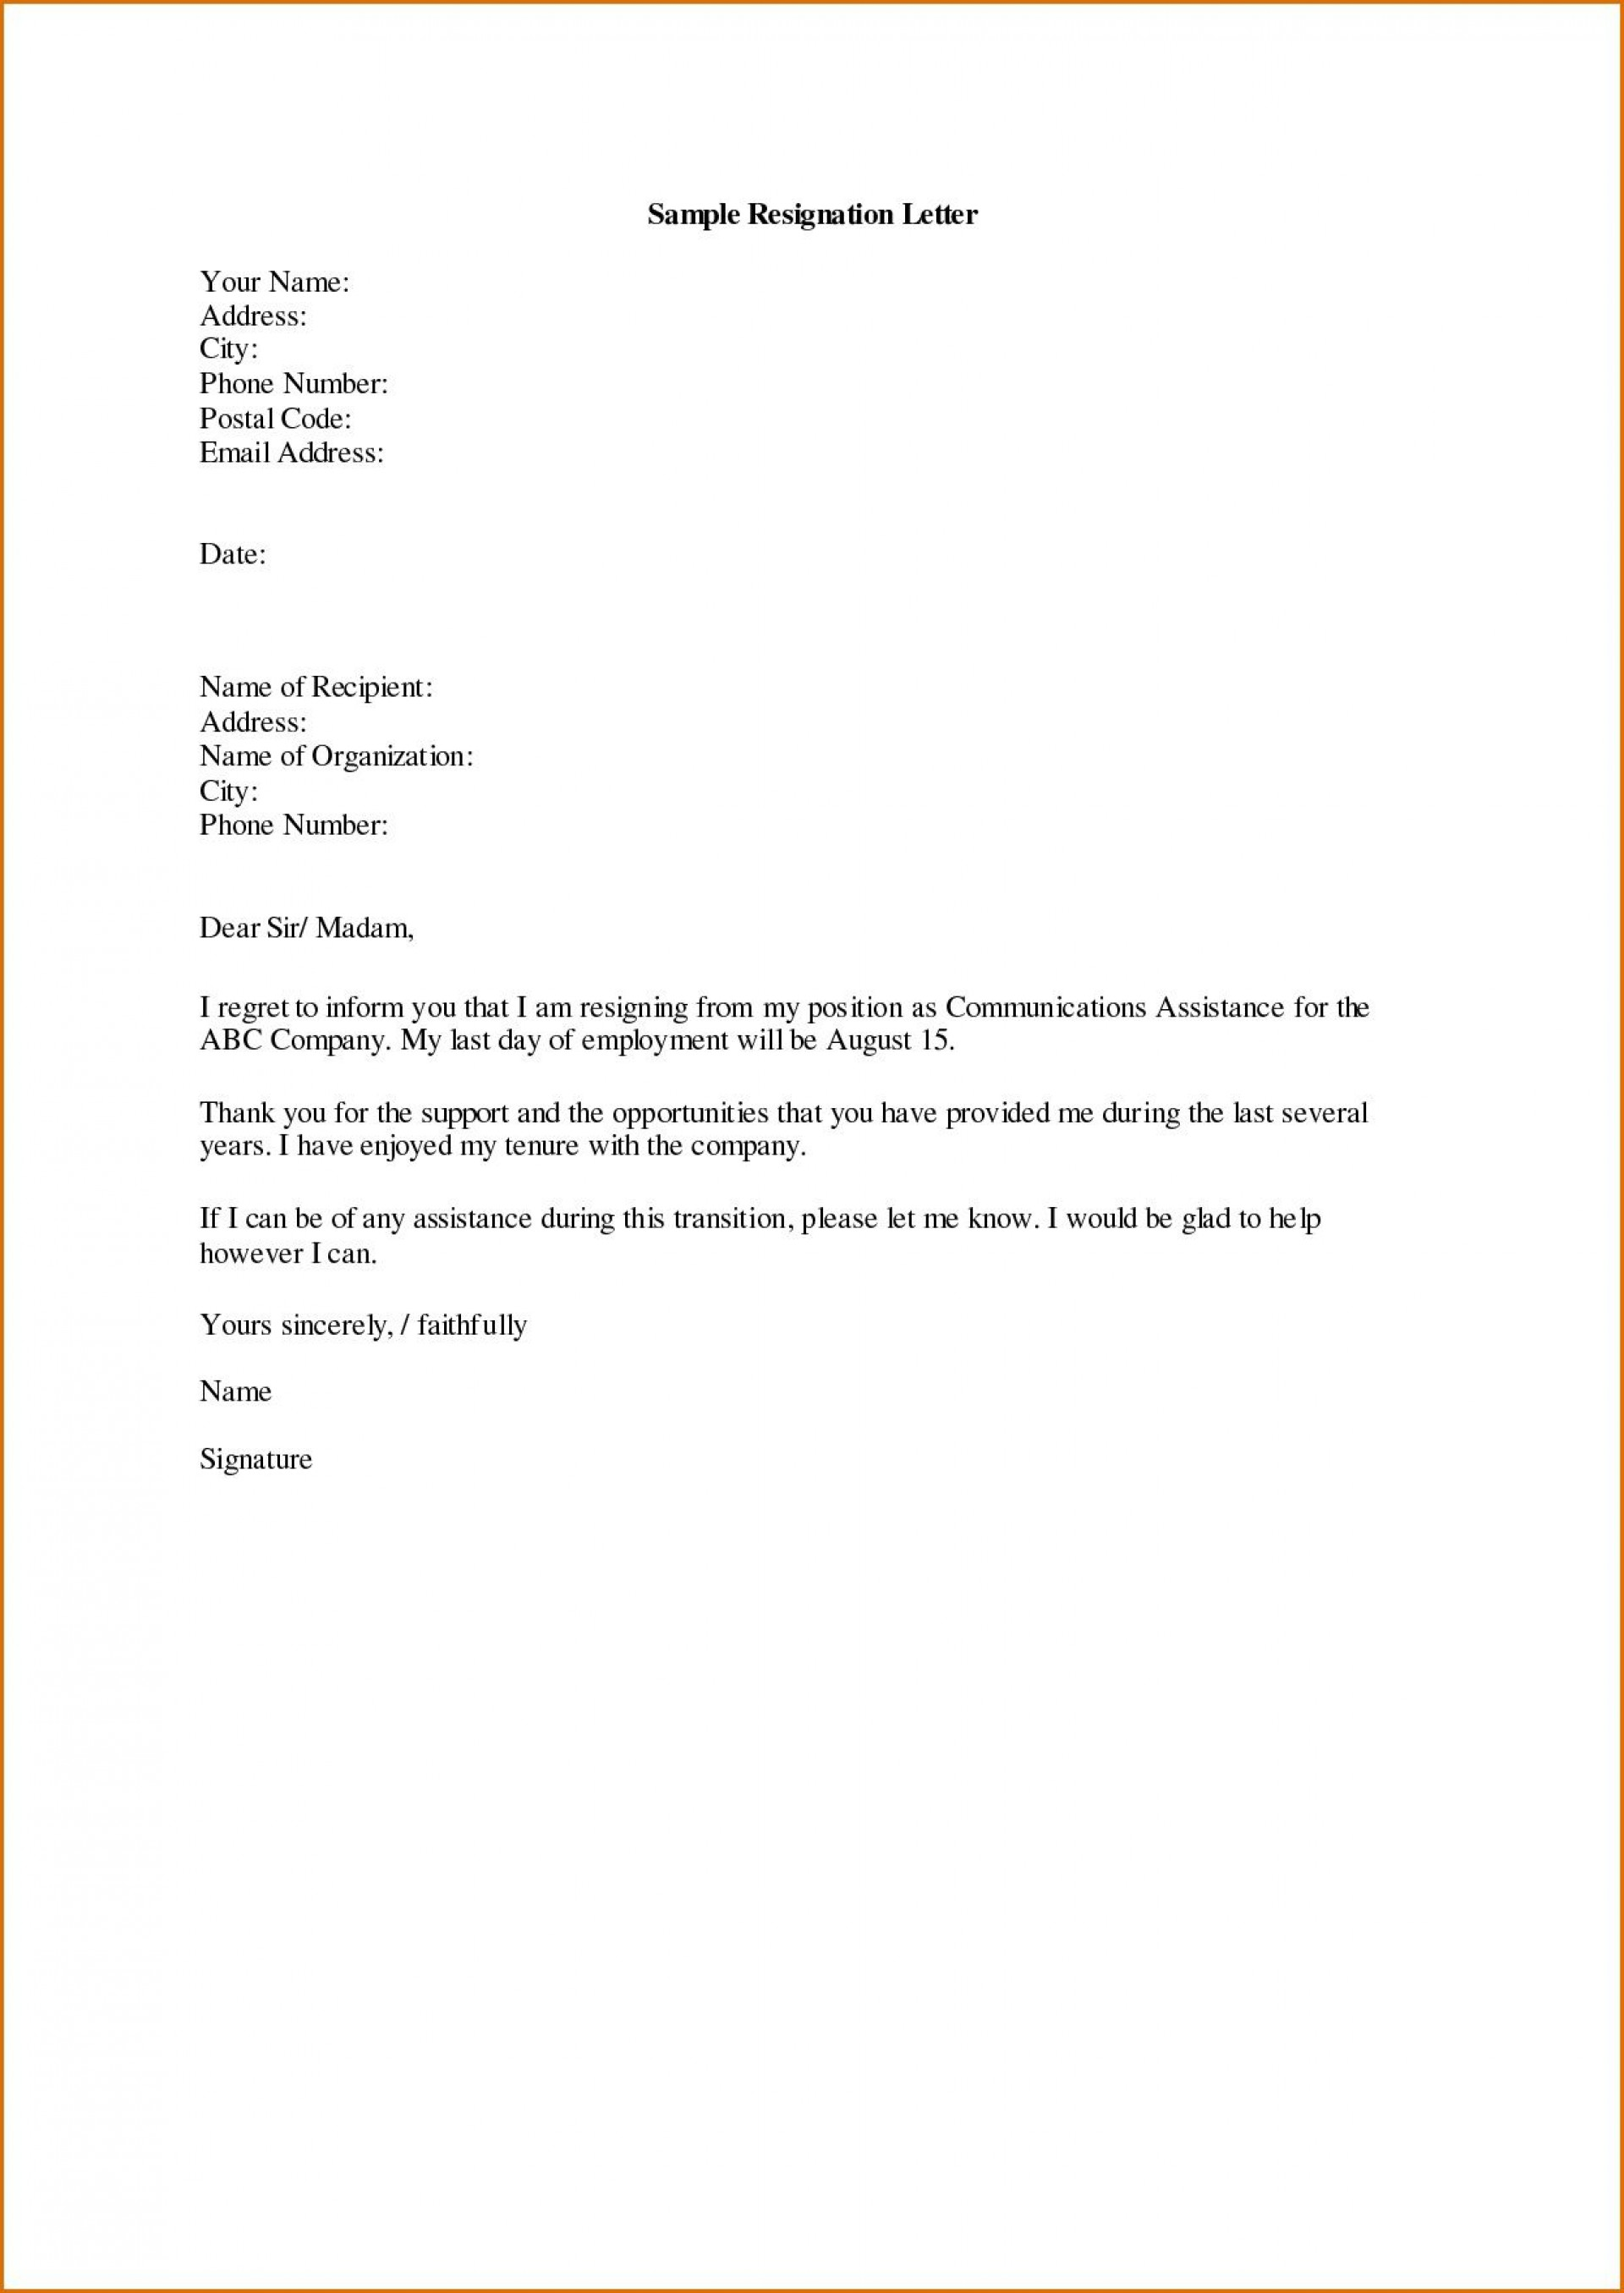 003 Awful Sample Resignation Letter Template High Def  For Teacher Word - Free Downloadable1920